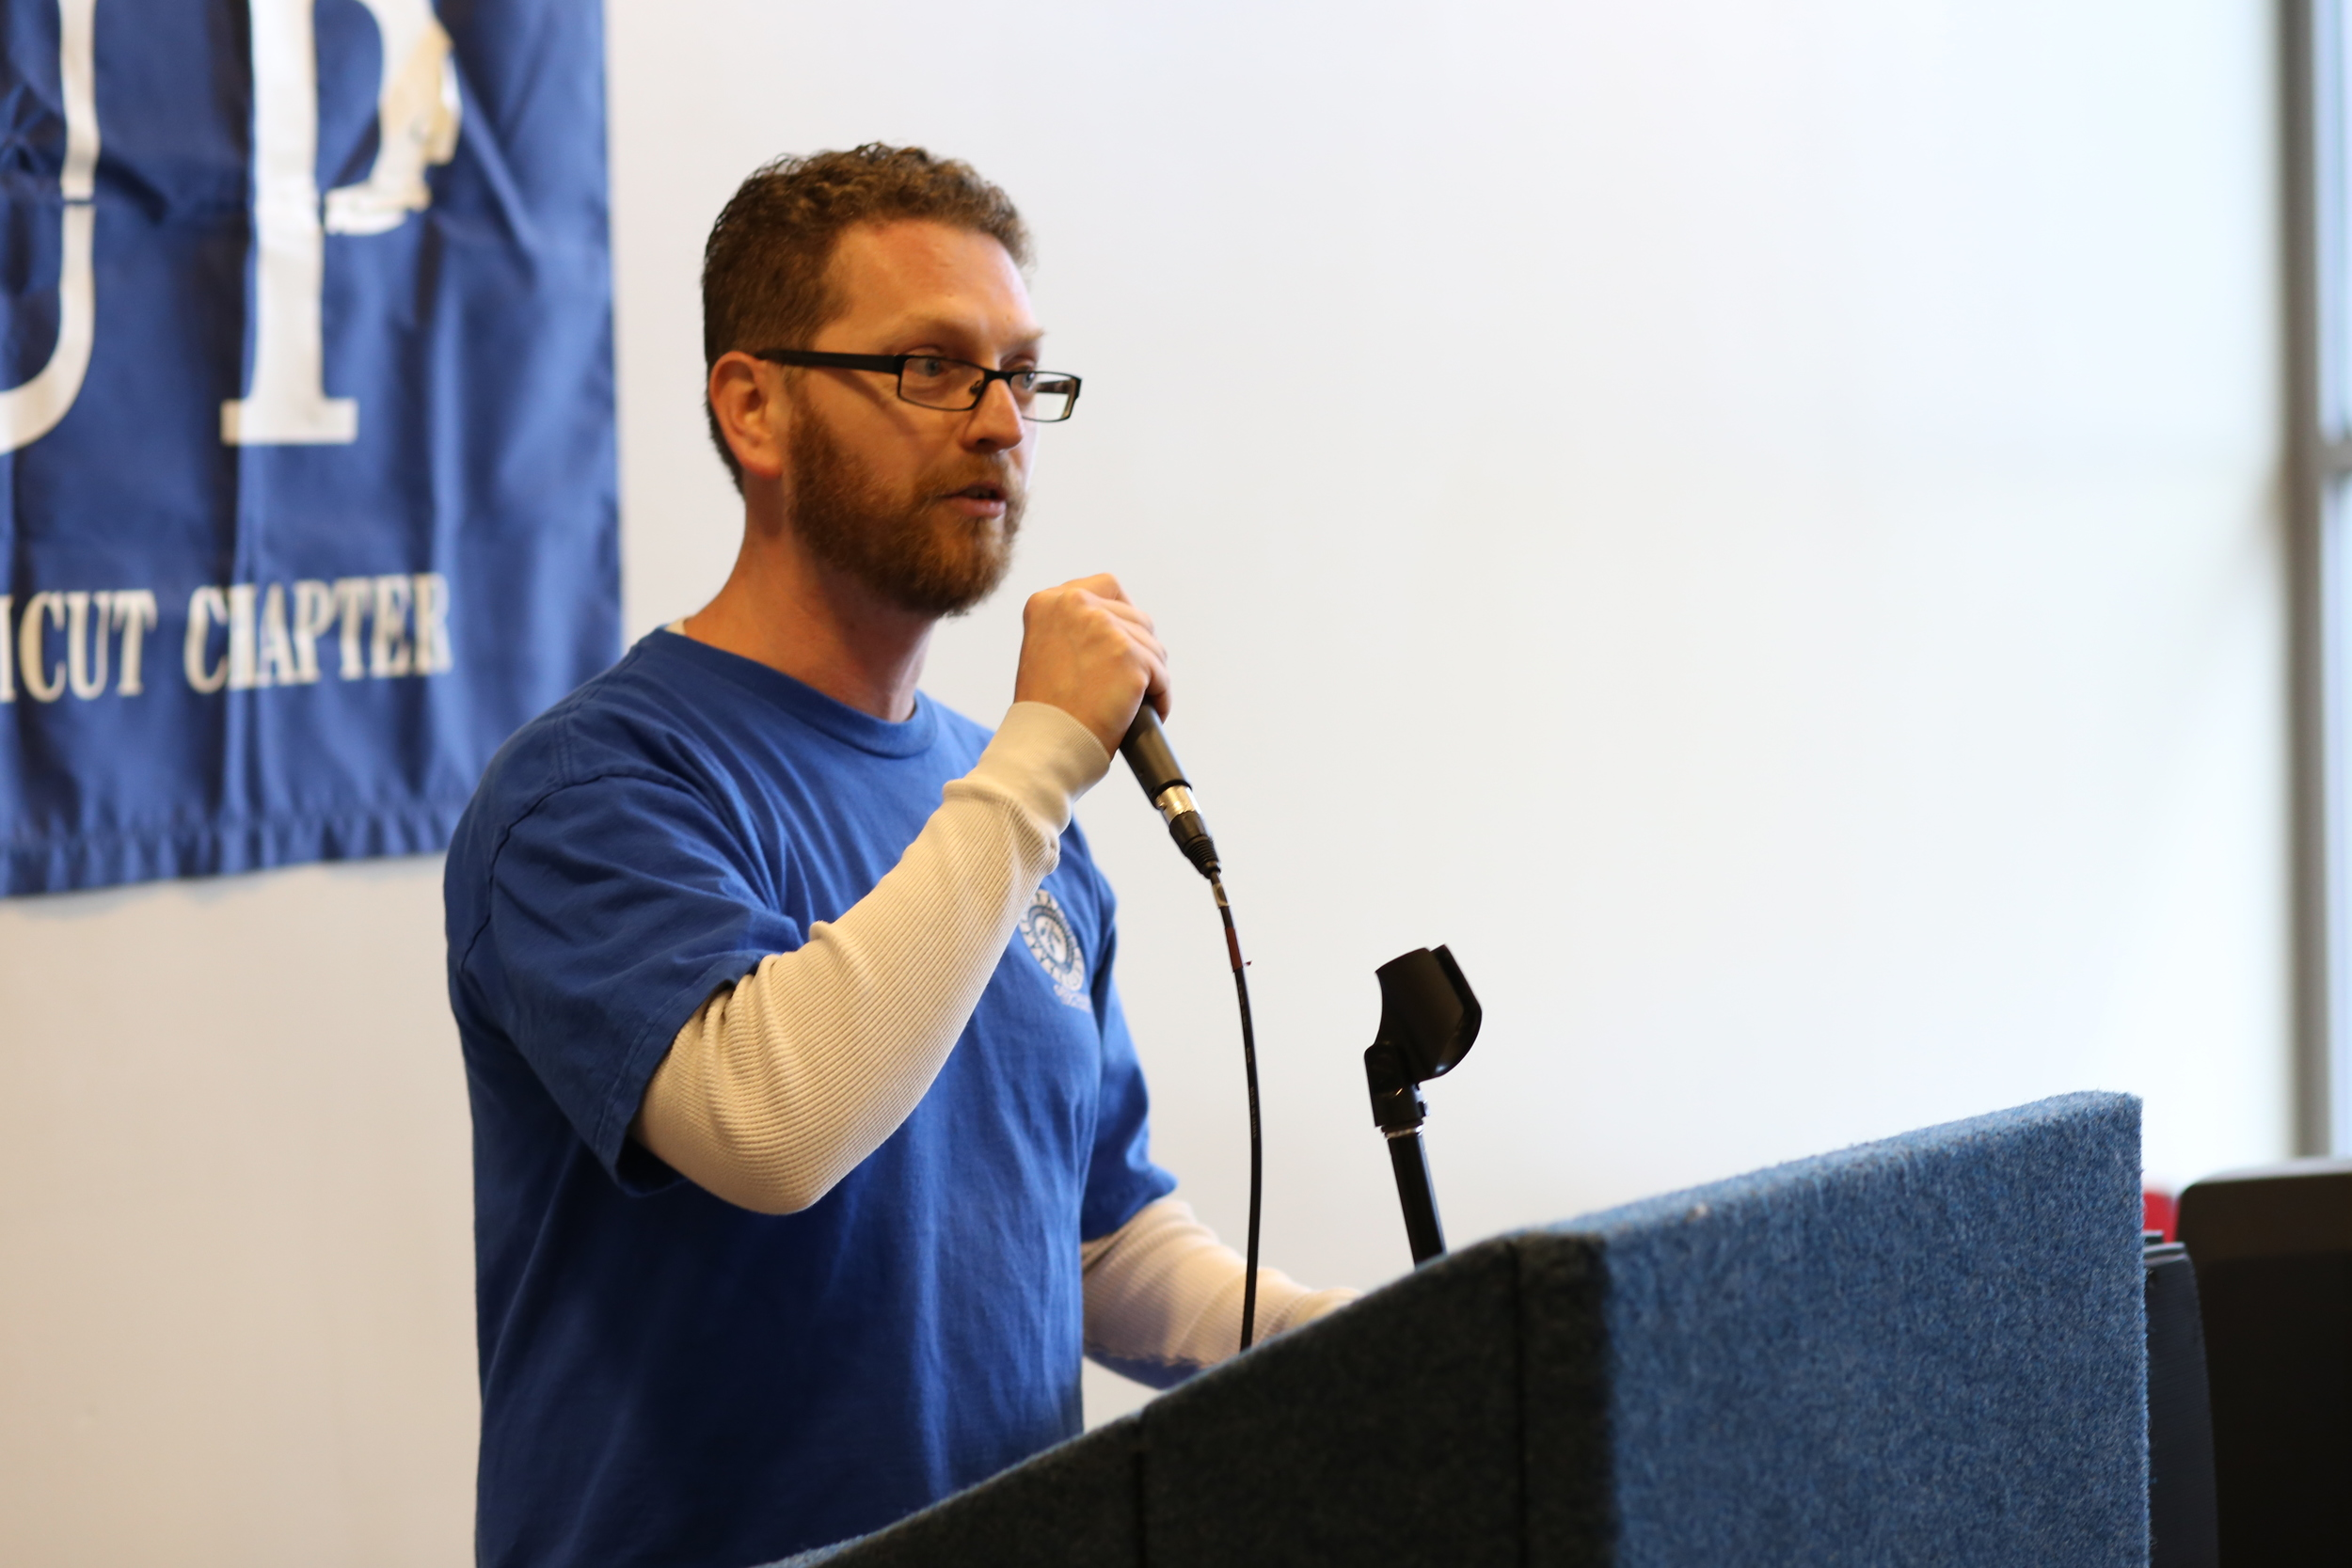 Todd Vachon, president of the UConn Graduate Student Employment Union, speaks at the AAUP rally on Feb. 24 in the Student Union (Jackson Haigis/The Daily Campus)